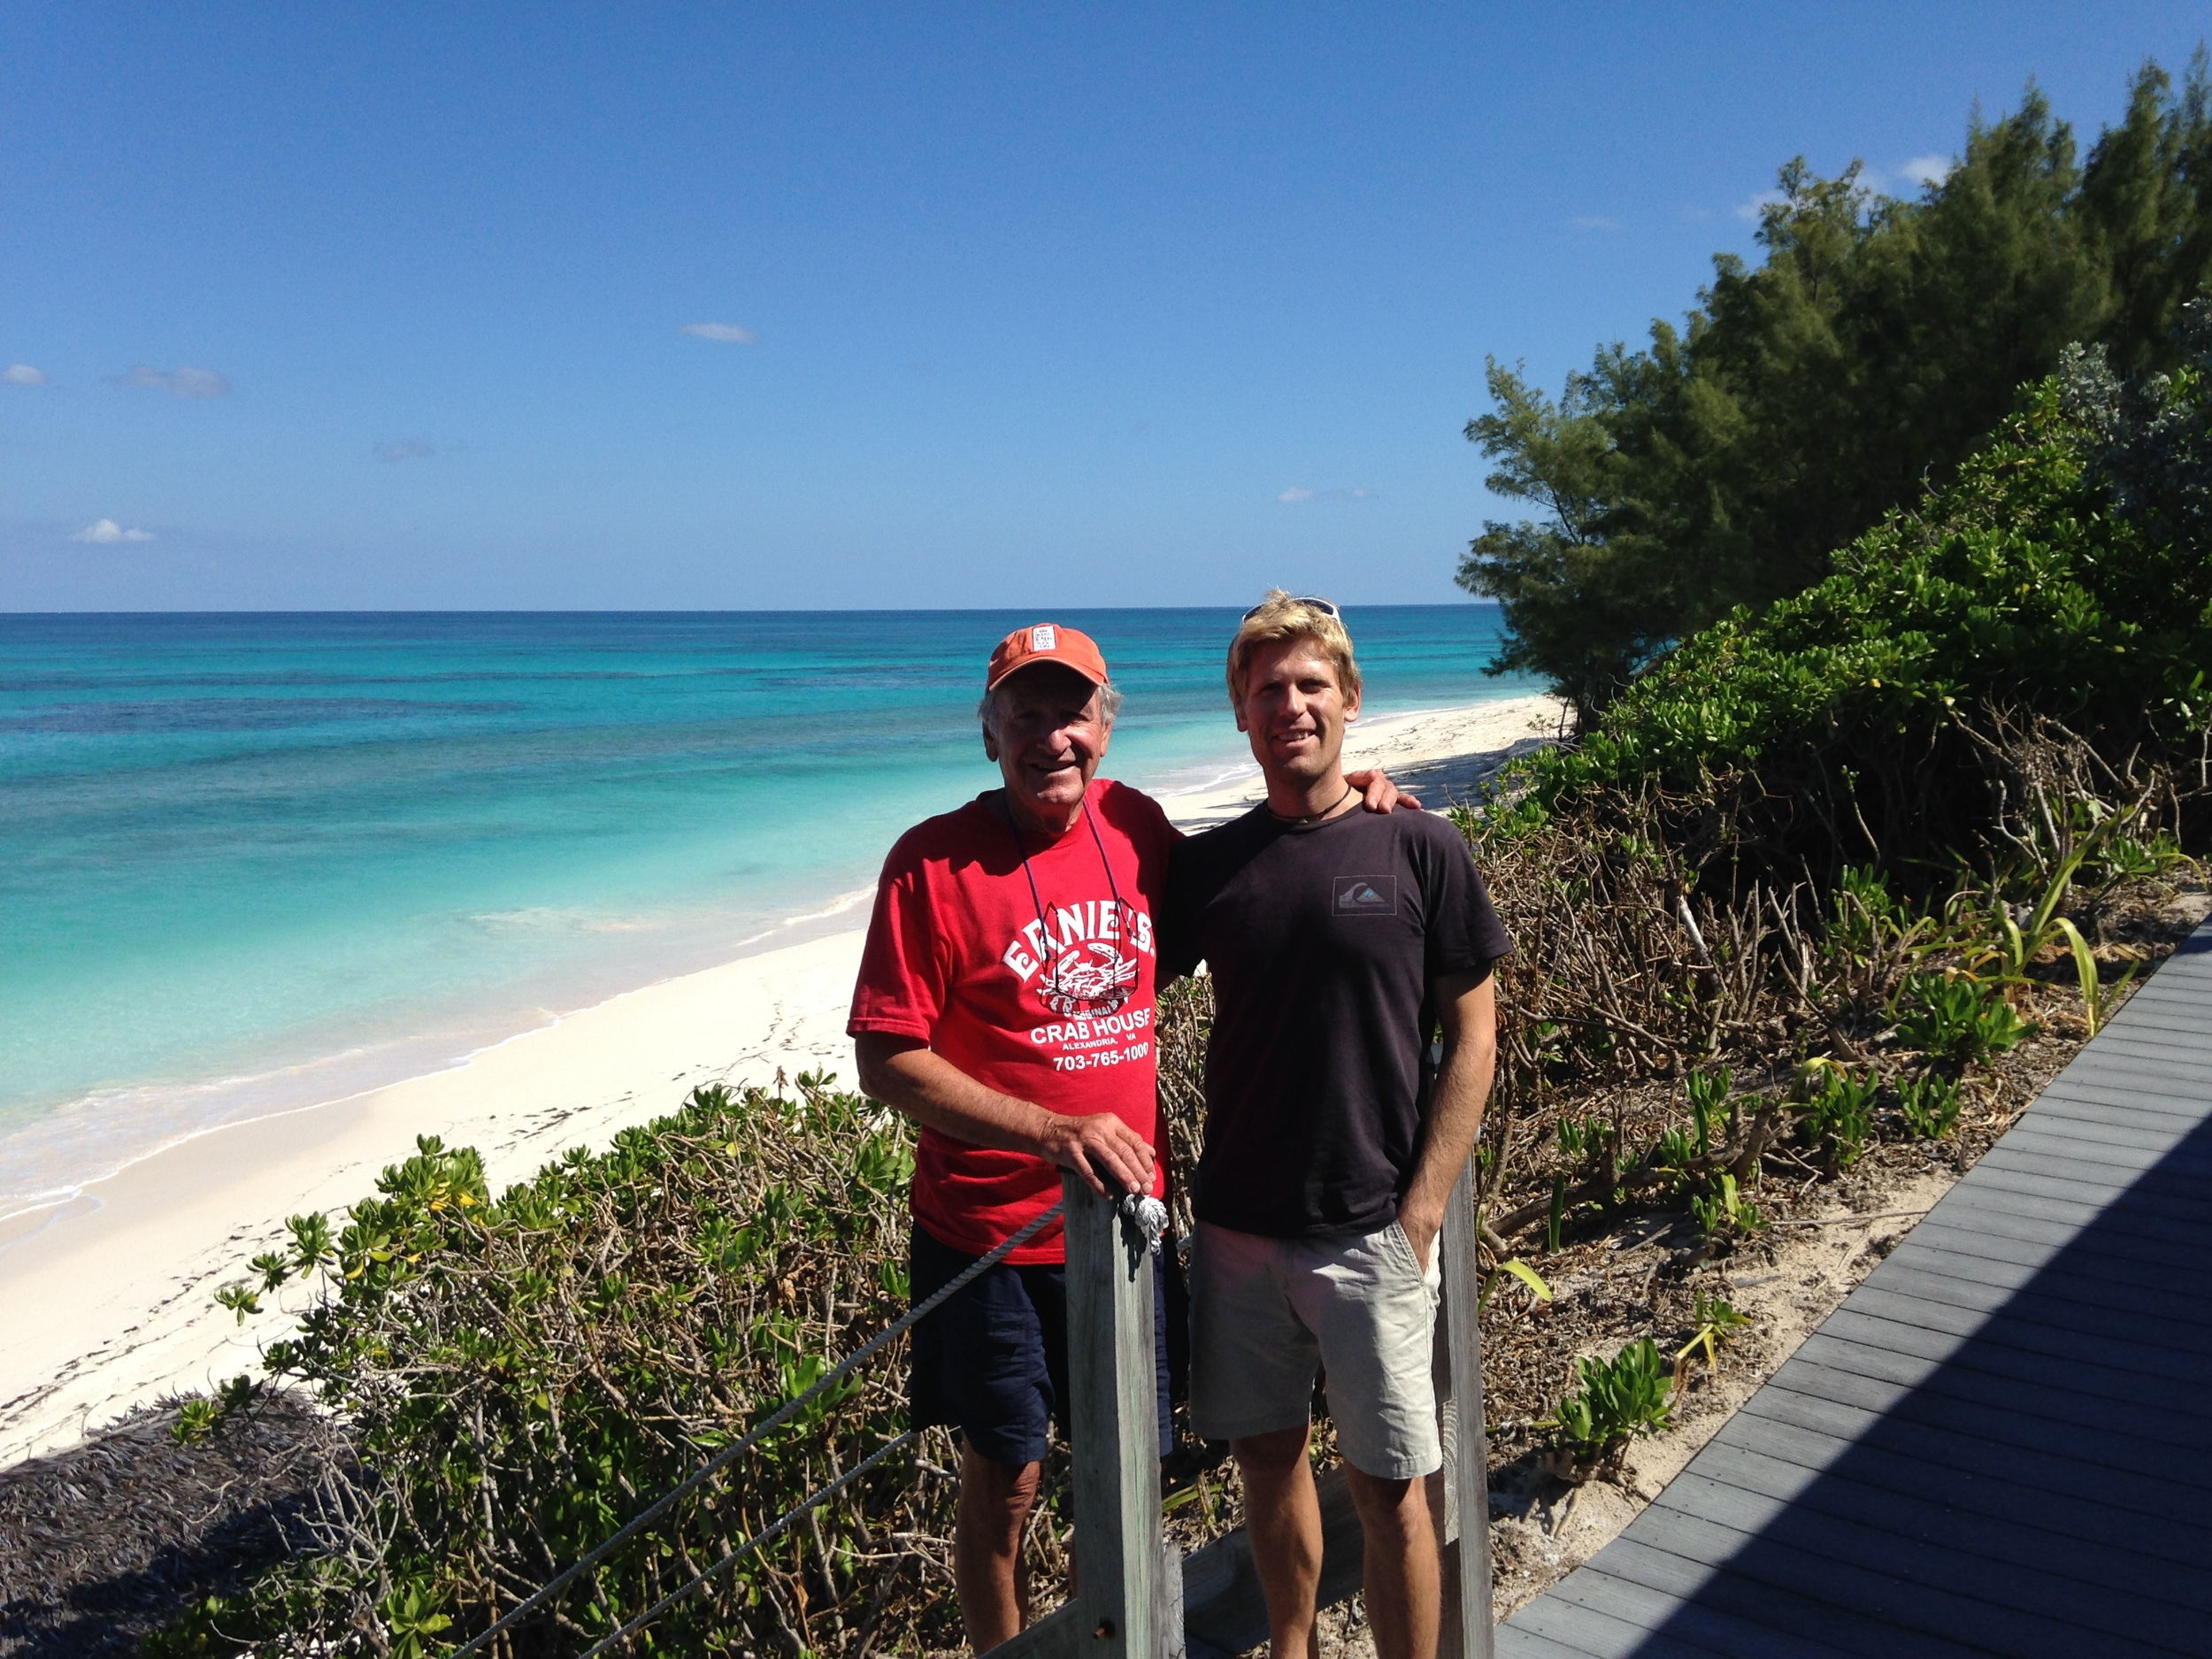 Andy & Tom on his deck overlooking the Atlantic, just outside Hope Town in the Abacos.